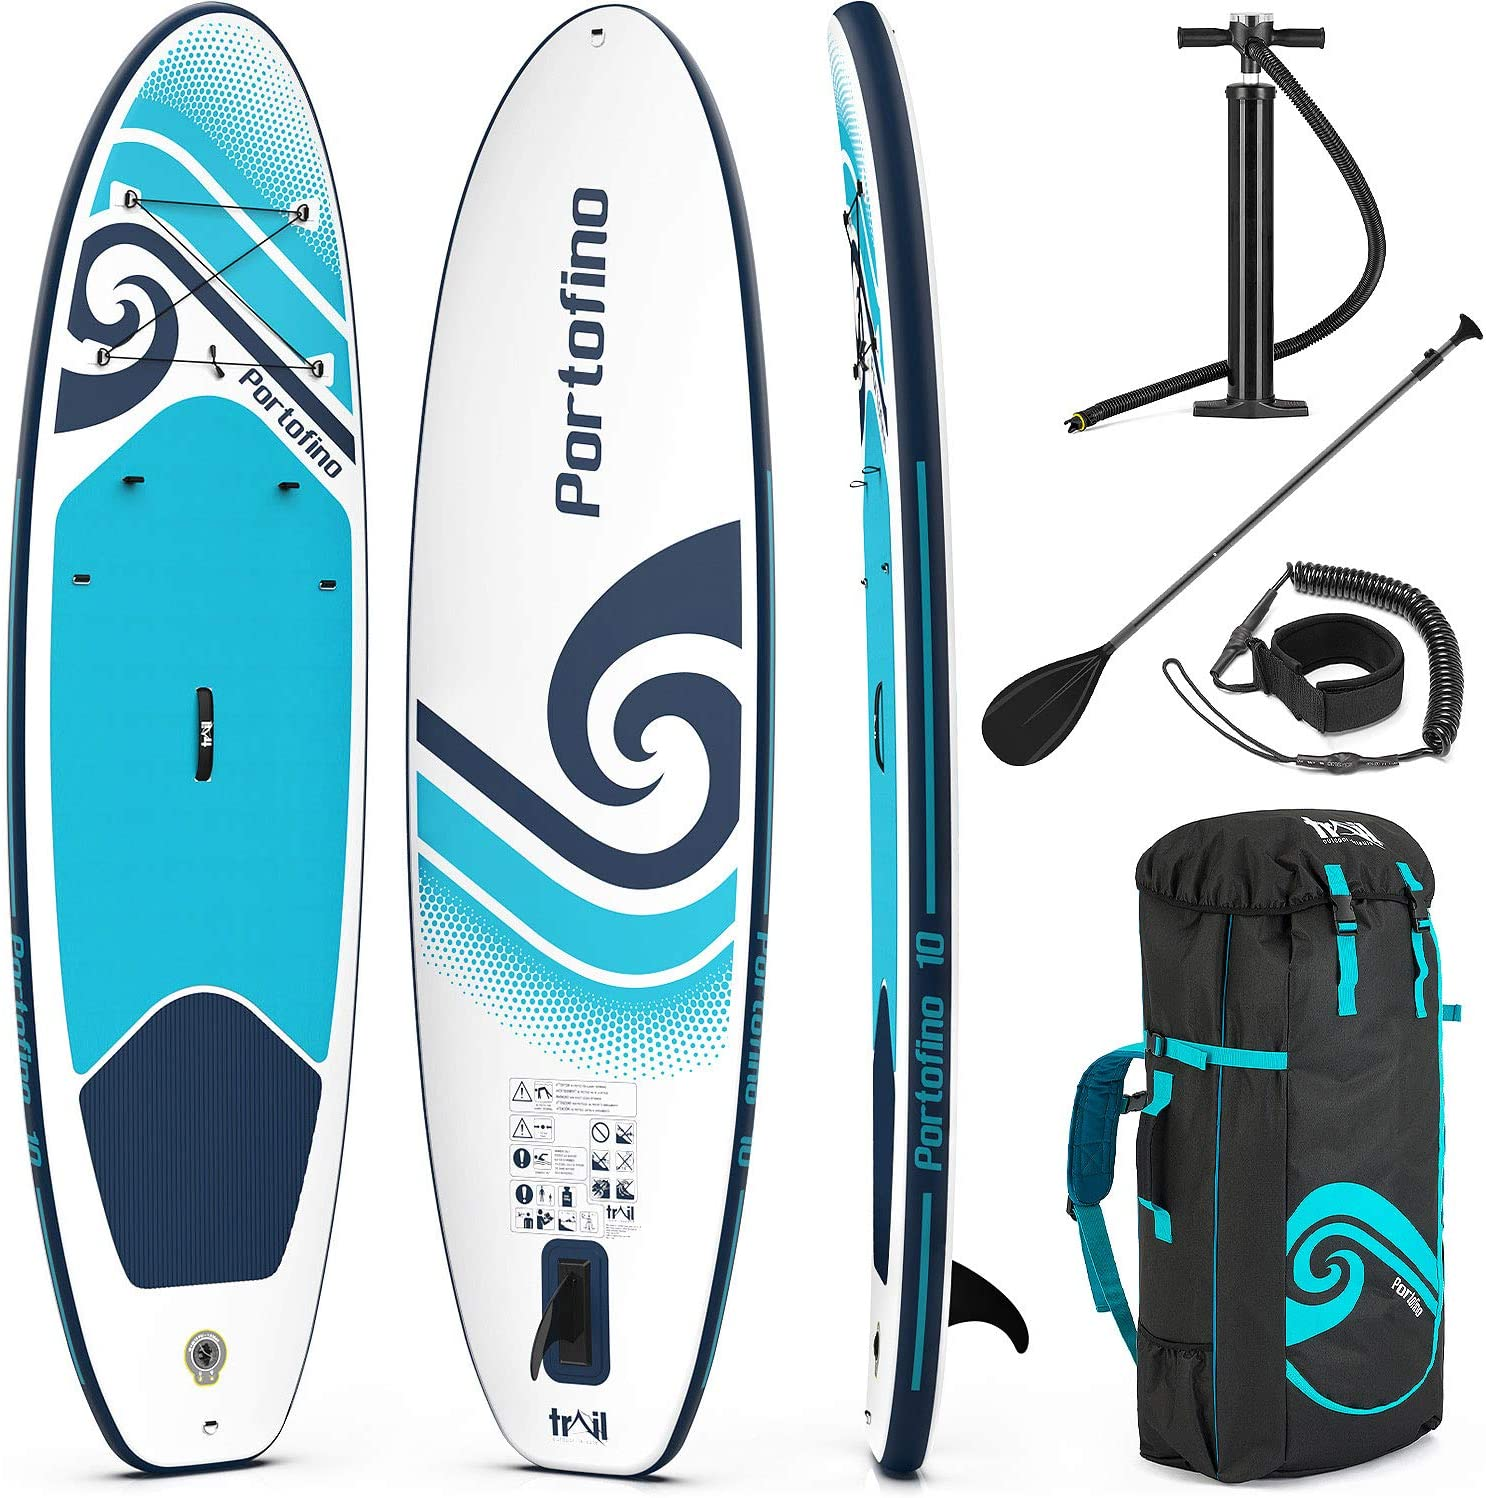 Portofino budget inflatable stand up paddle board